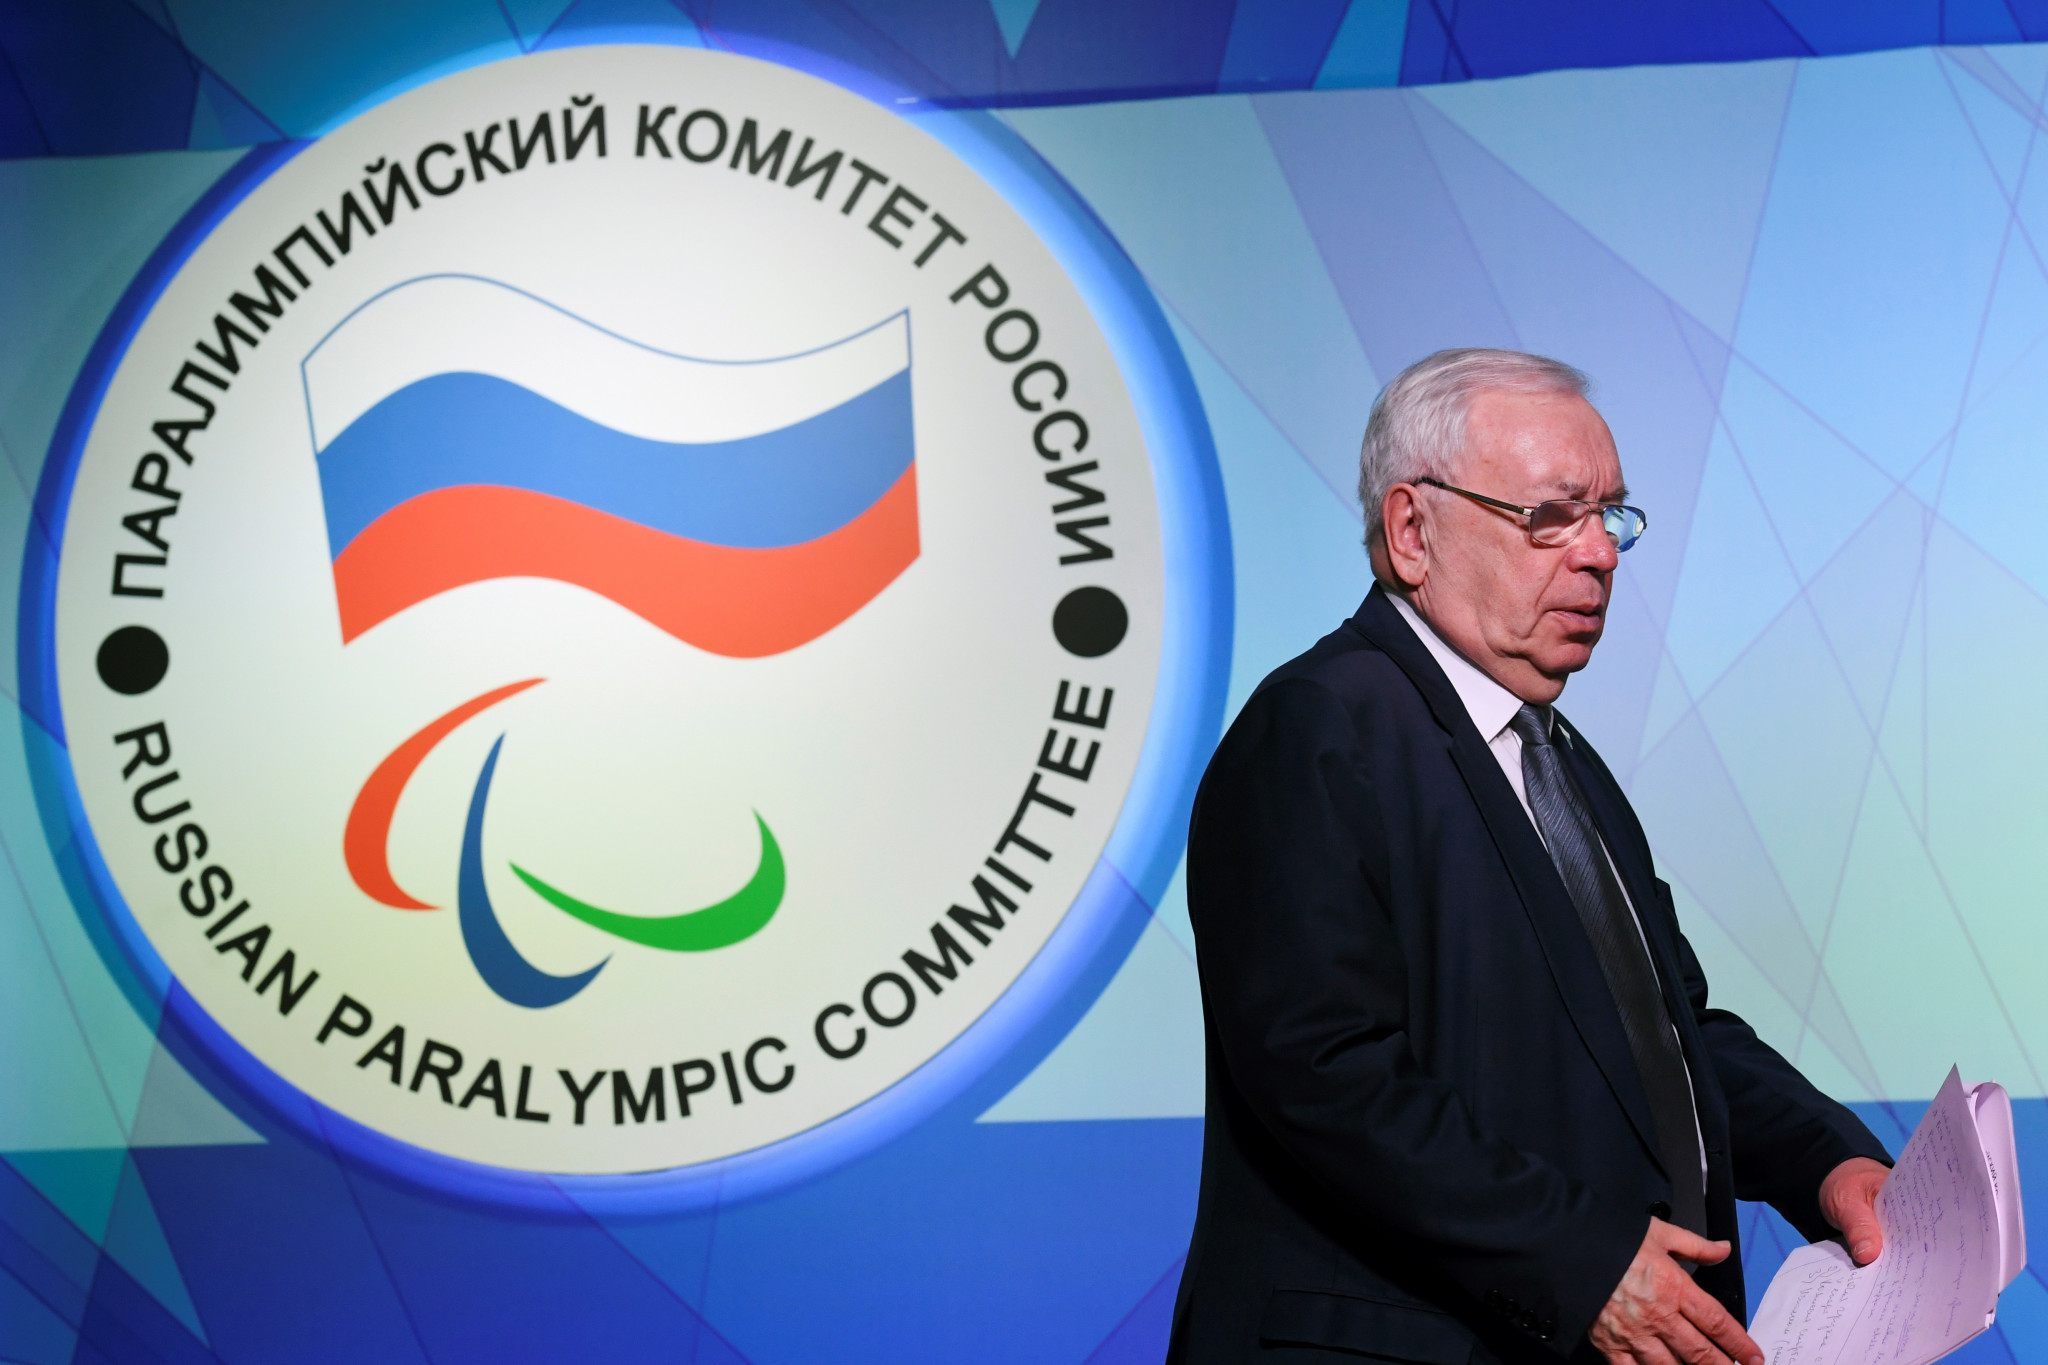 Russian suspension to continue with no update scheduled for IPC Governing Board meeting